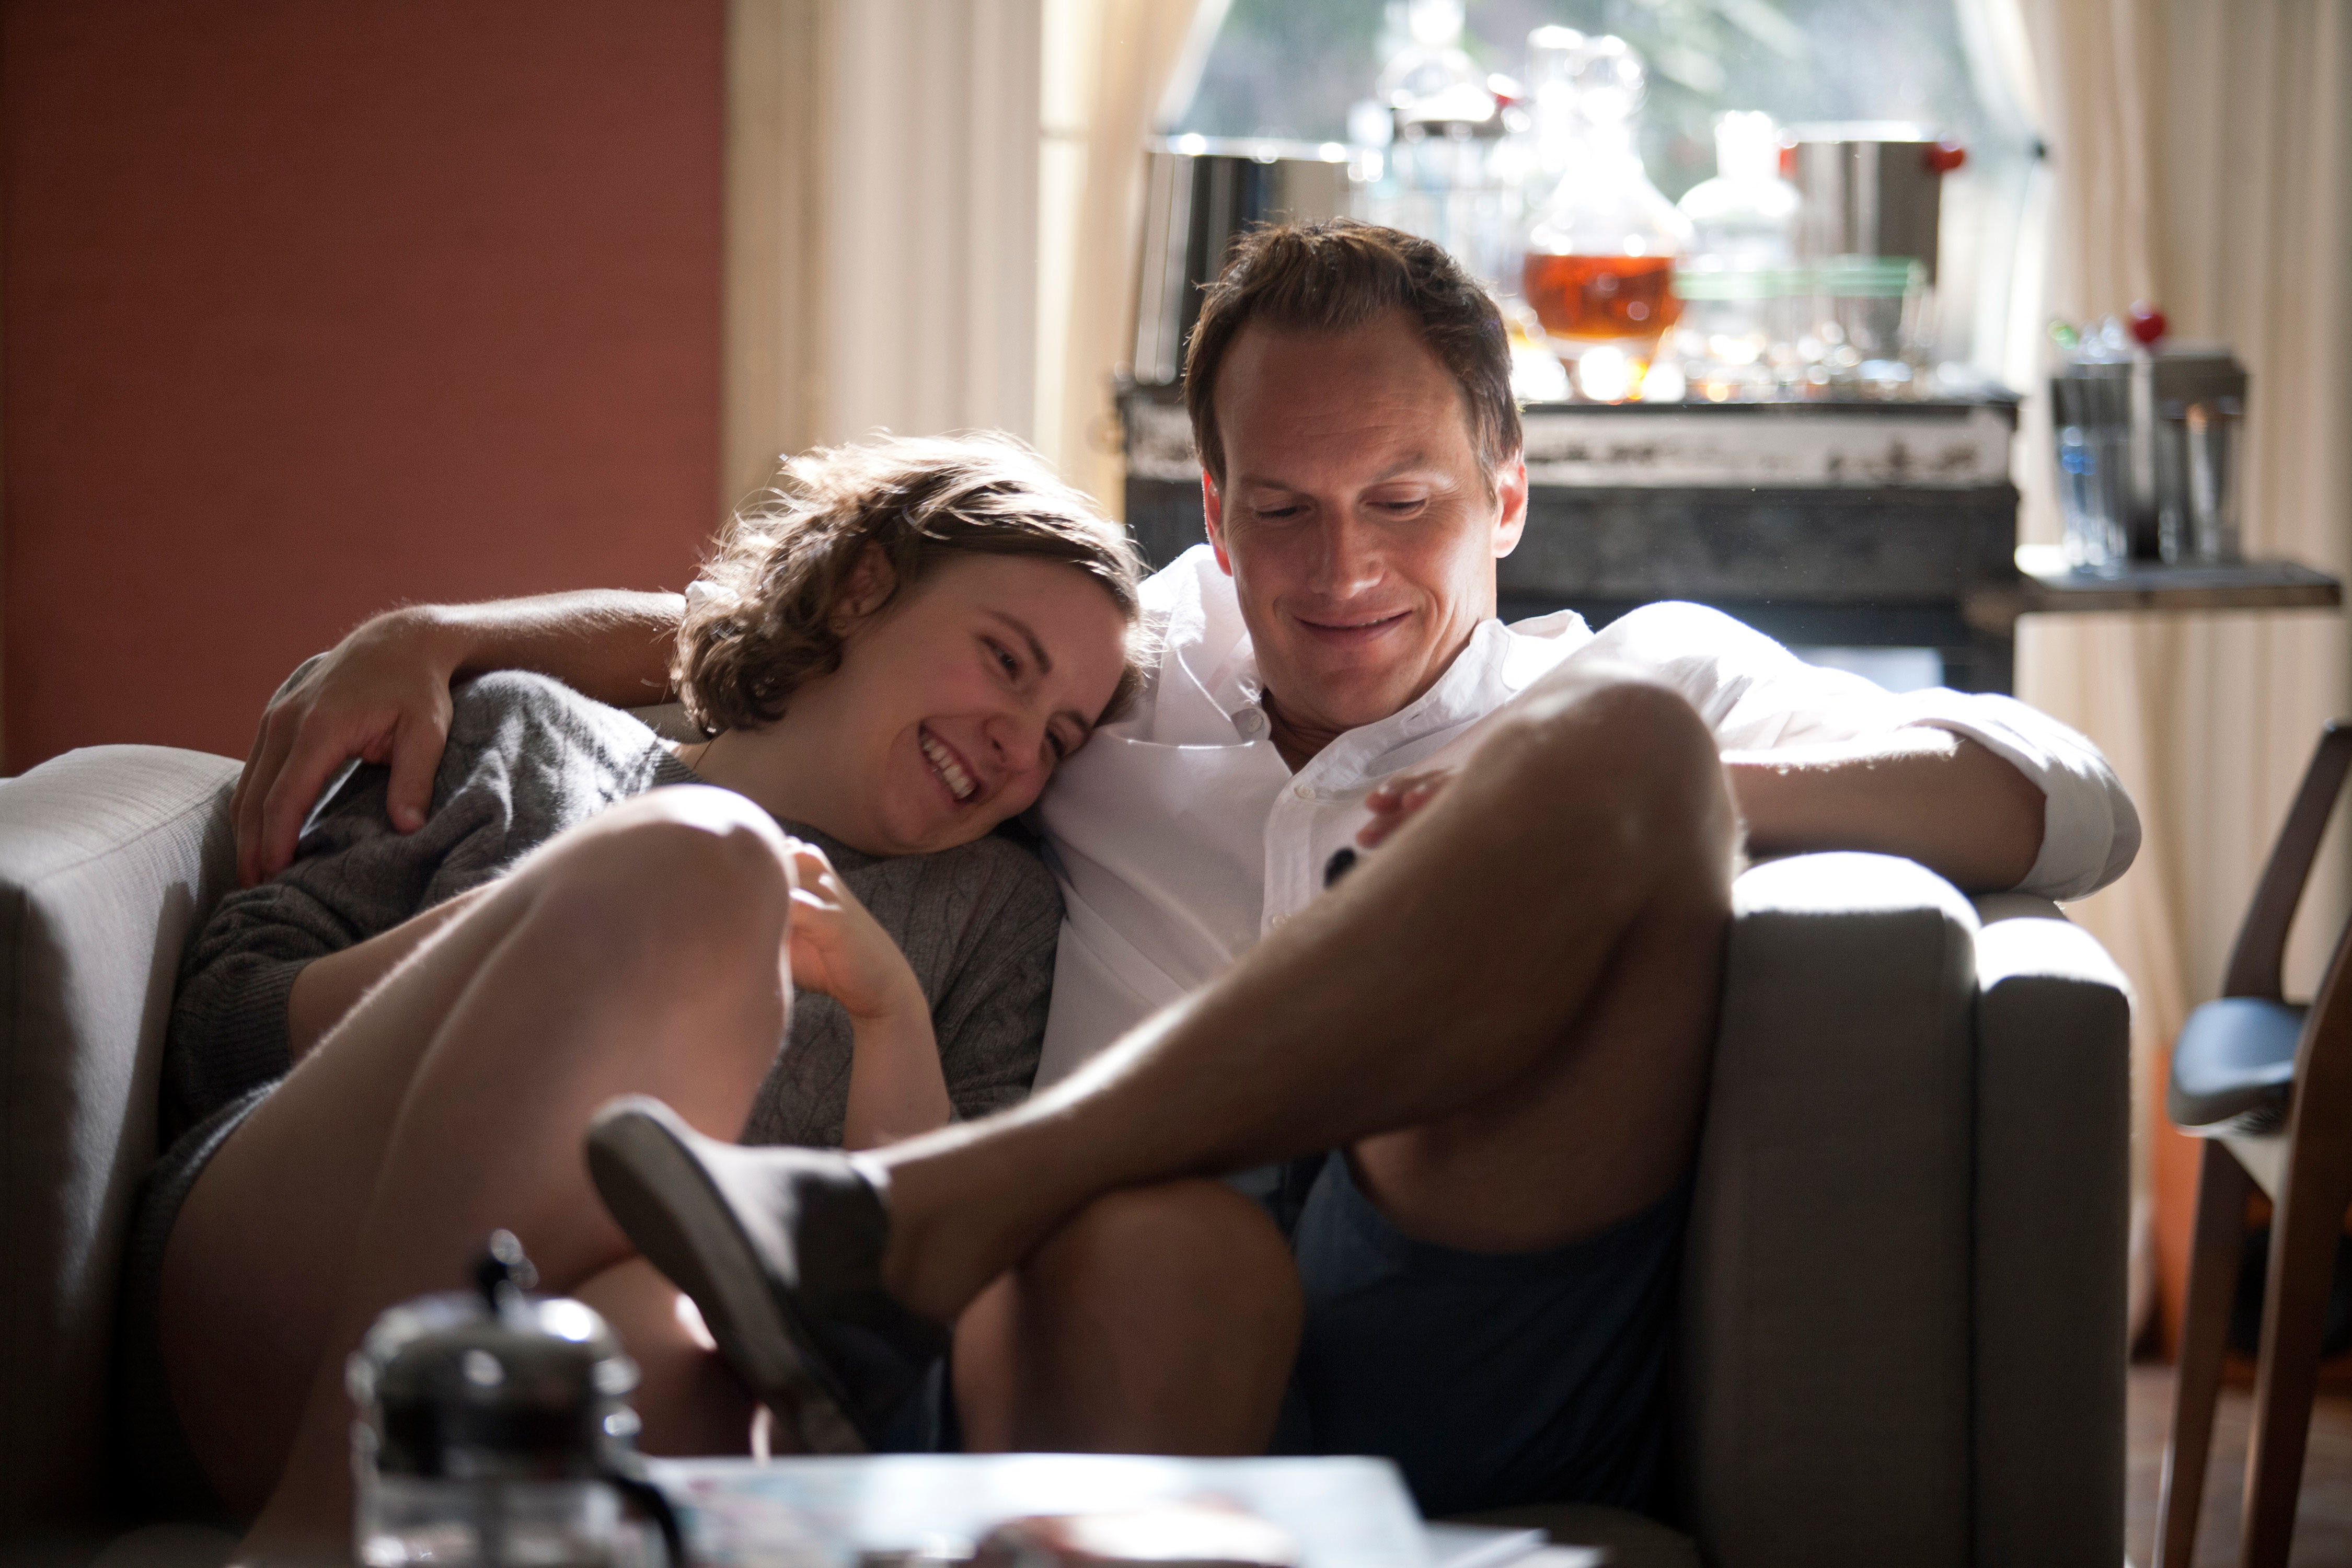 on the unlikely pairing of dunham s character with patrick wilson